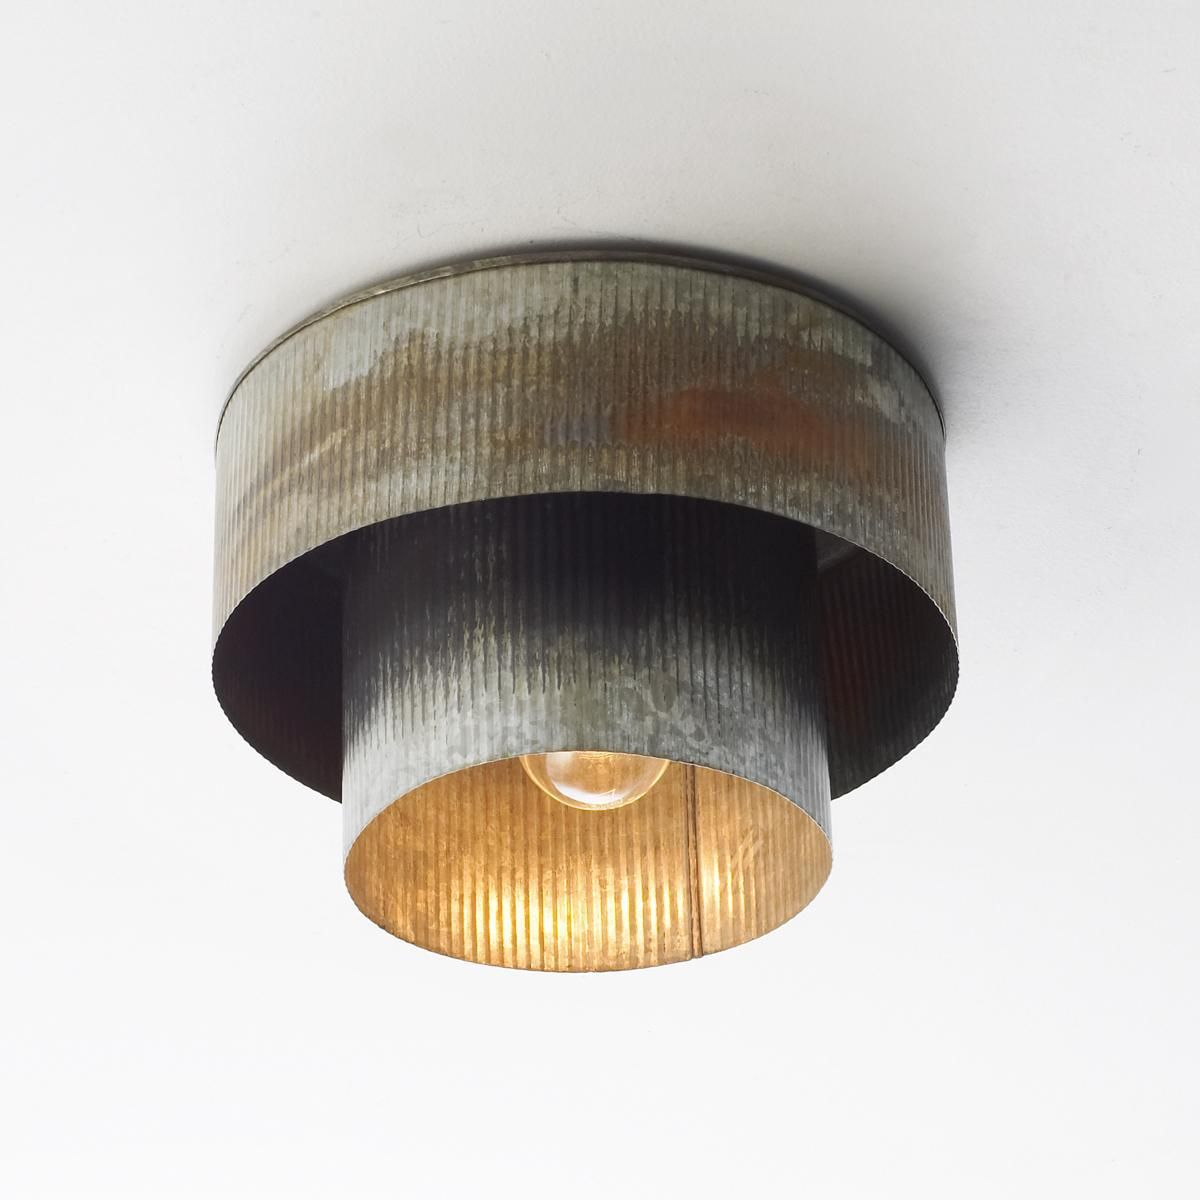 Tin Ceiling Lights Corrugated tin drum ceiling light corrugated tin ceiling light corrugated tin drum ceiling light shades of light audiocablefo